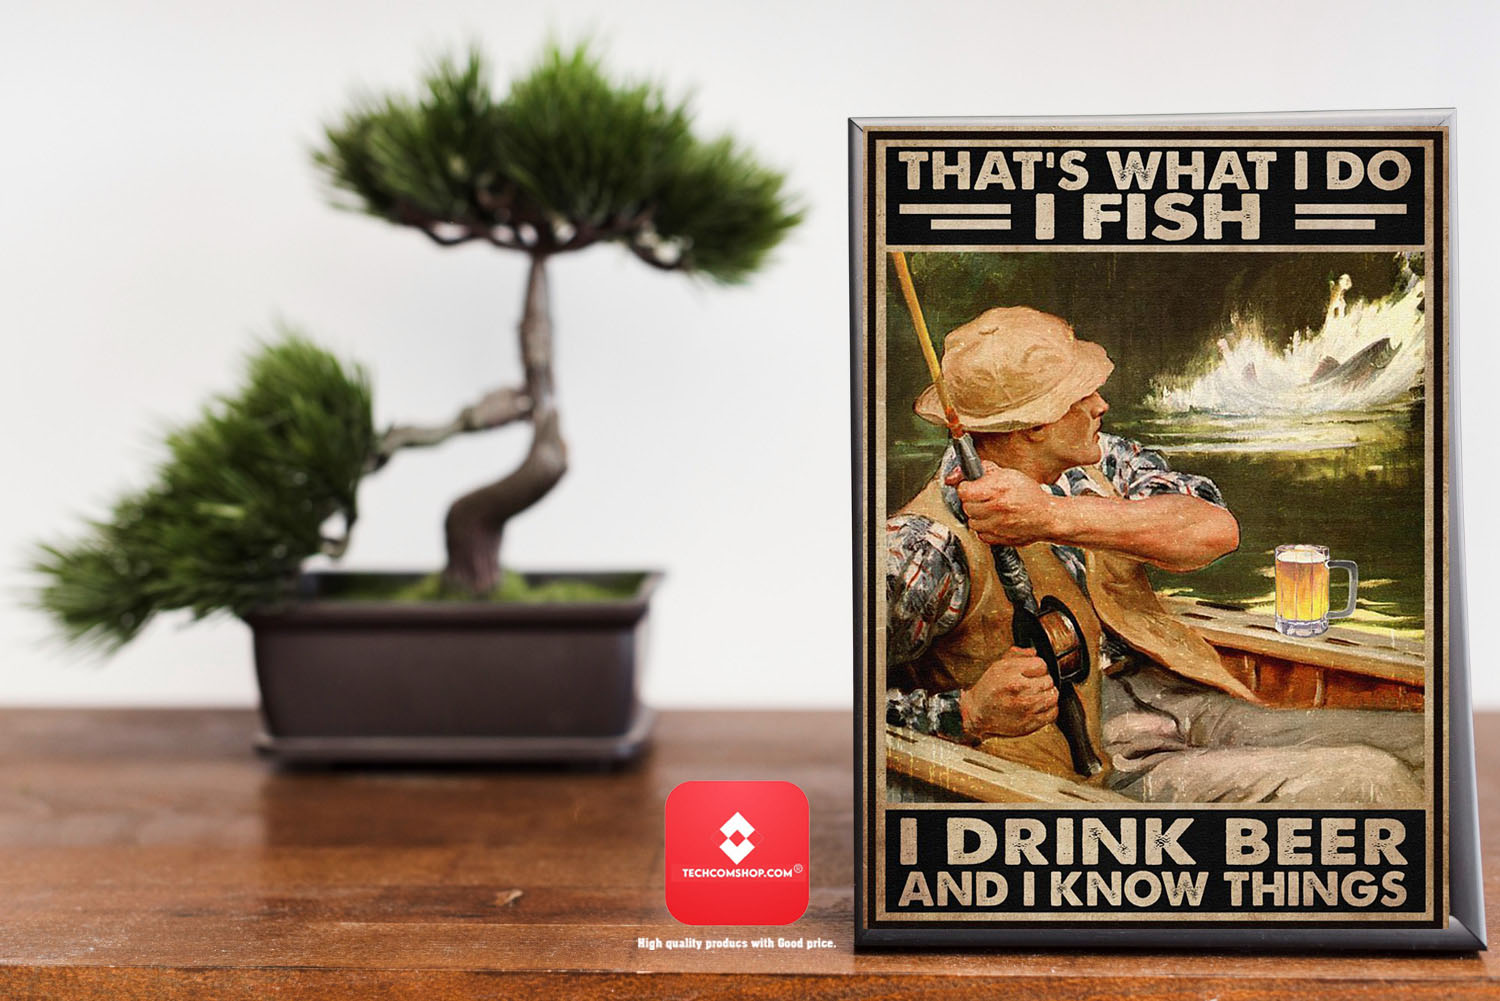 That's what I do I fish I drink beer and I know things poster 8